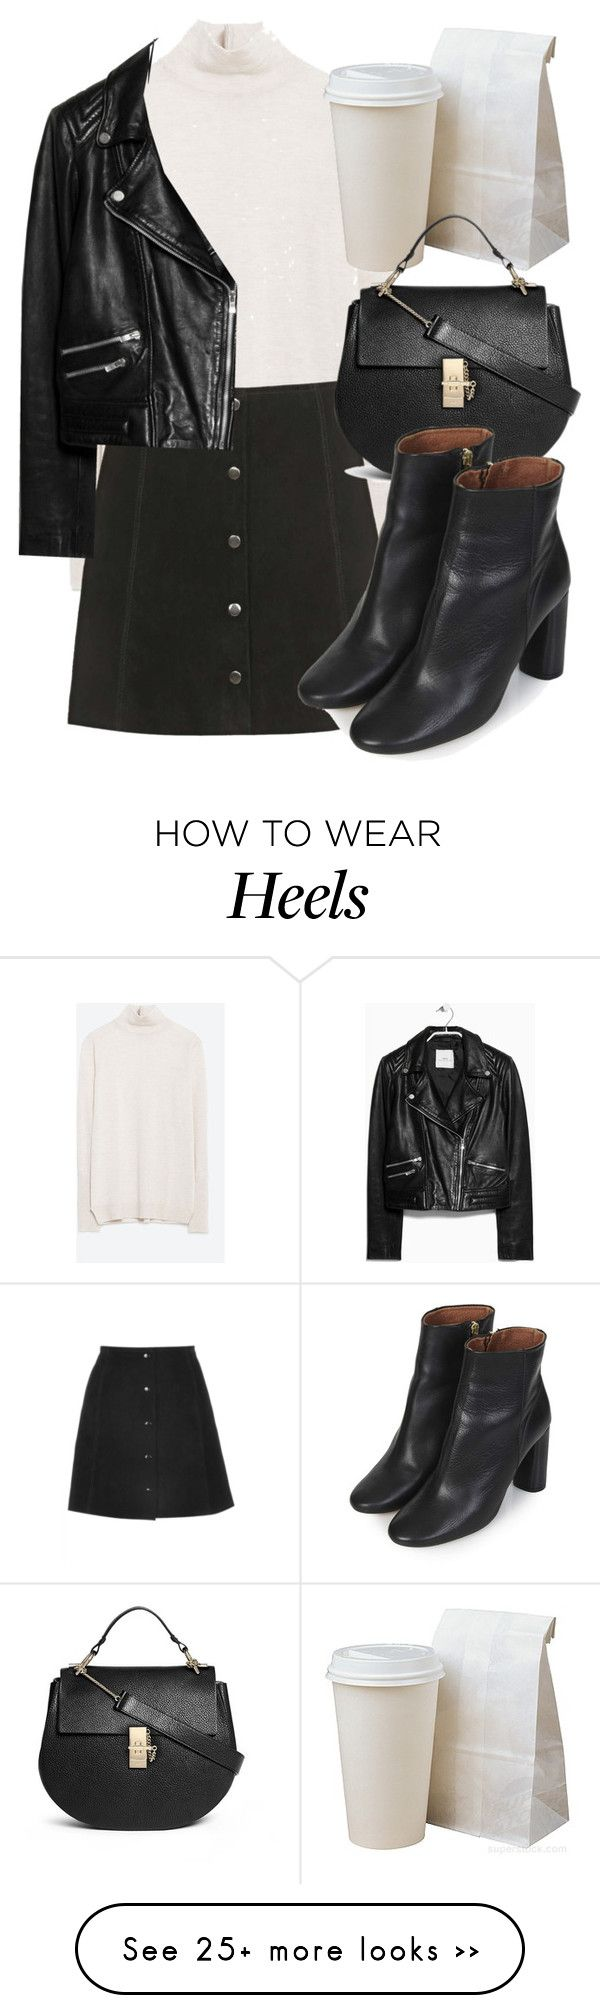 """Untitled #4415"" by laurenmboot on Polyvore featuring Zara, Topshop, MANGO and Chloé"